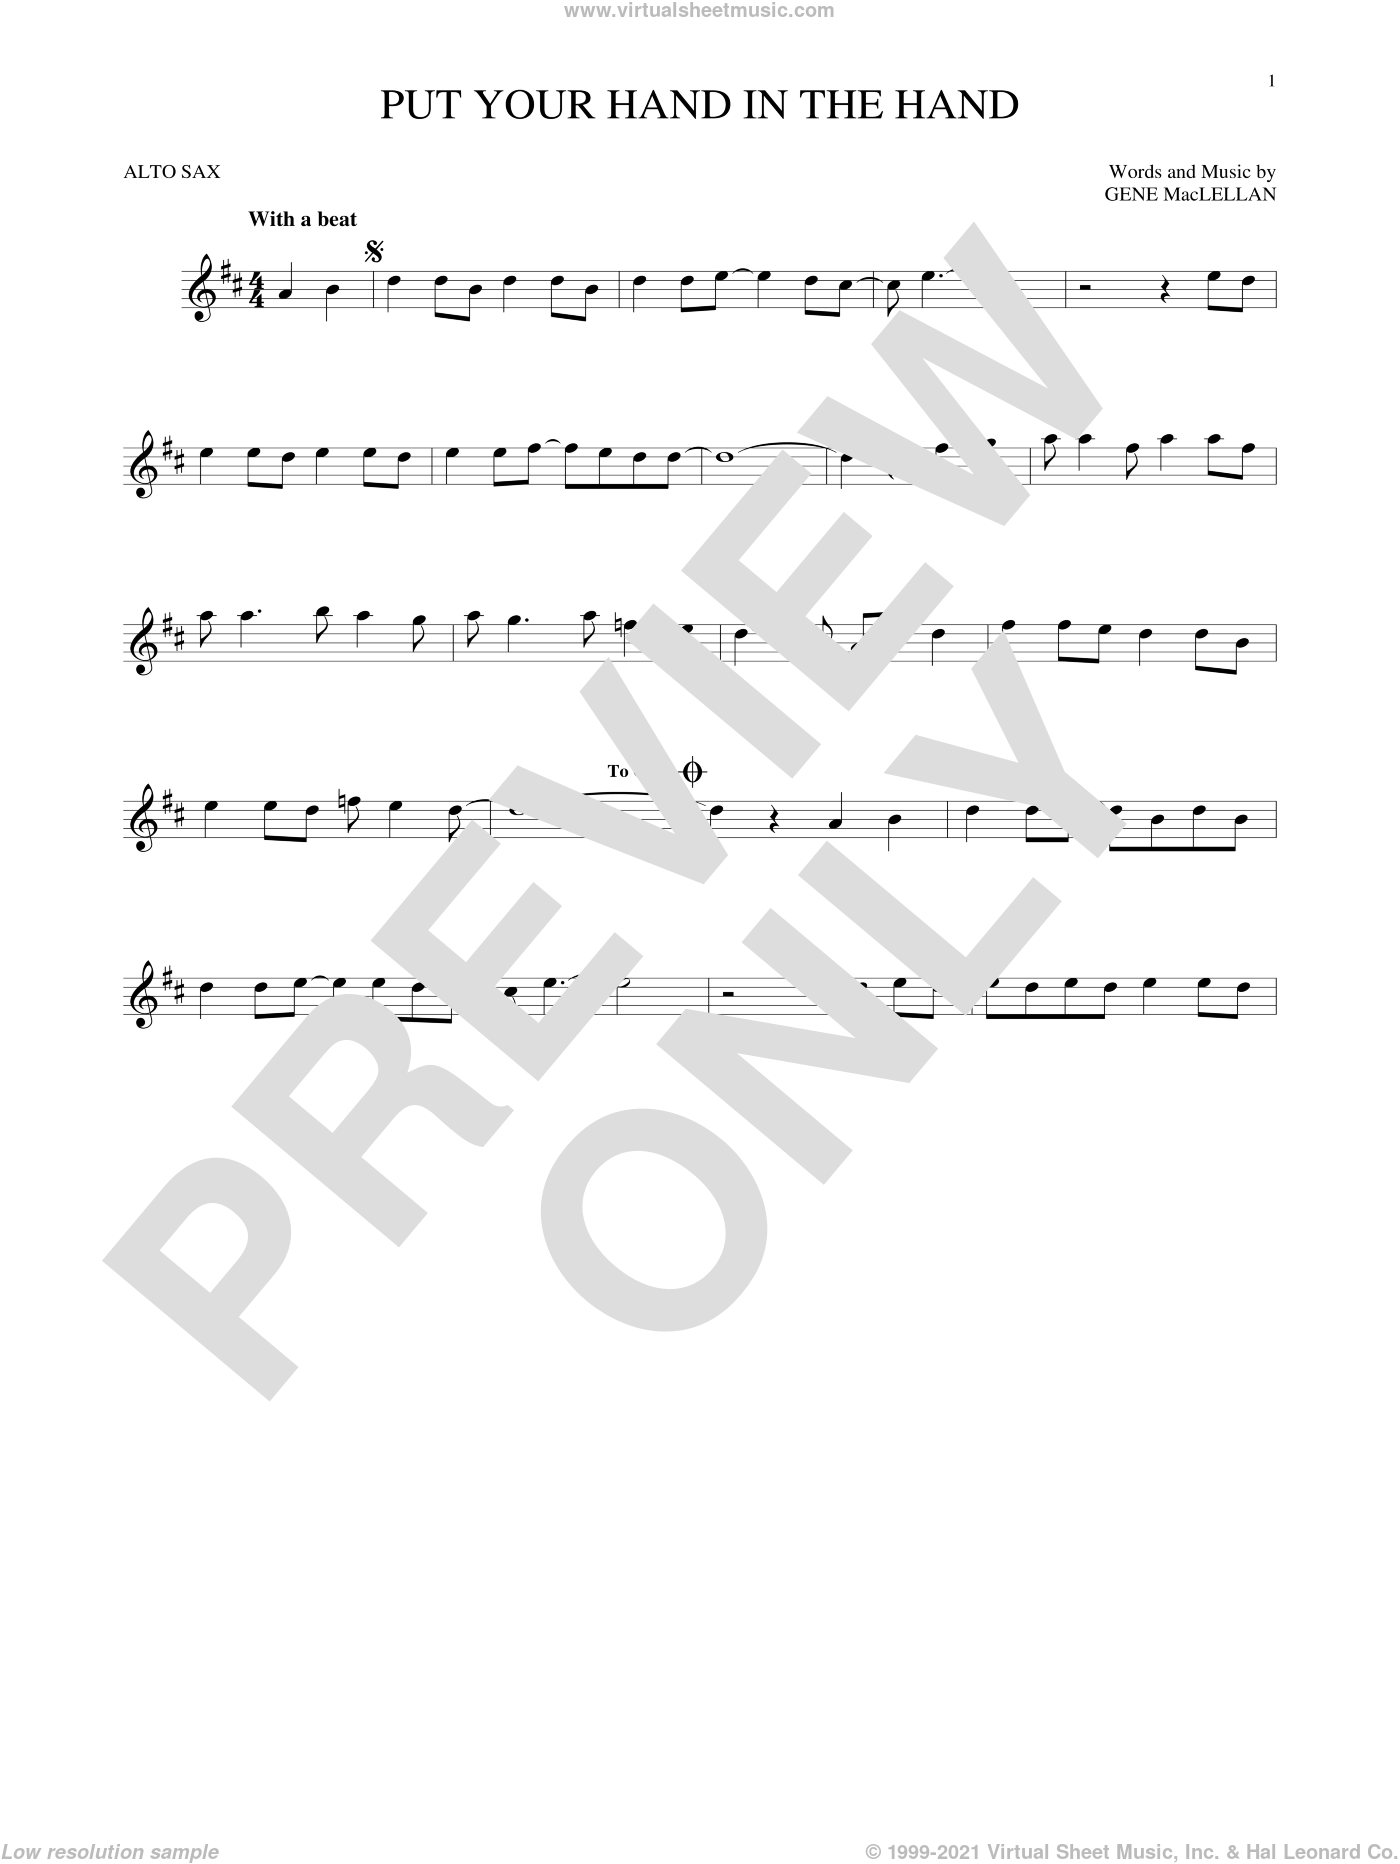 Put Your Hand In The Hand sheet music for alto saxophone solo by MacLellan and Ocean and Gene MacLellan, intermediate skill level